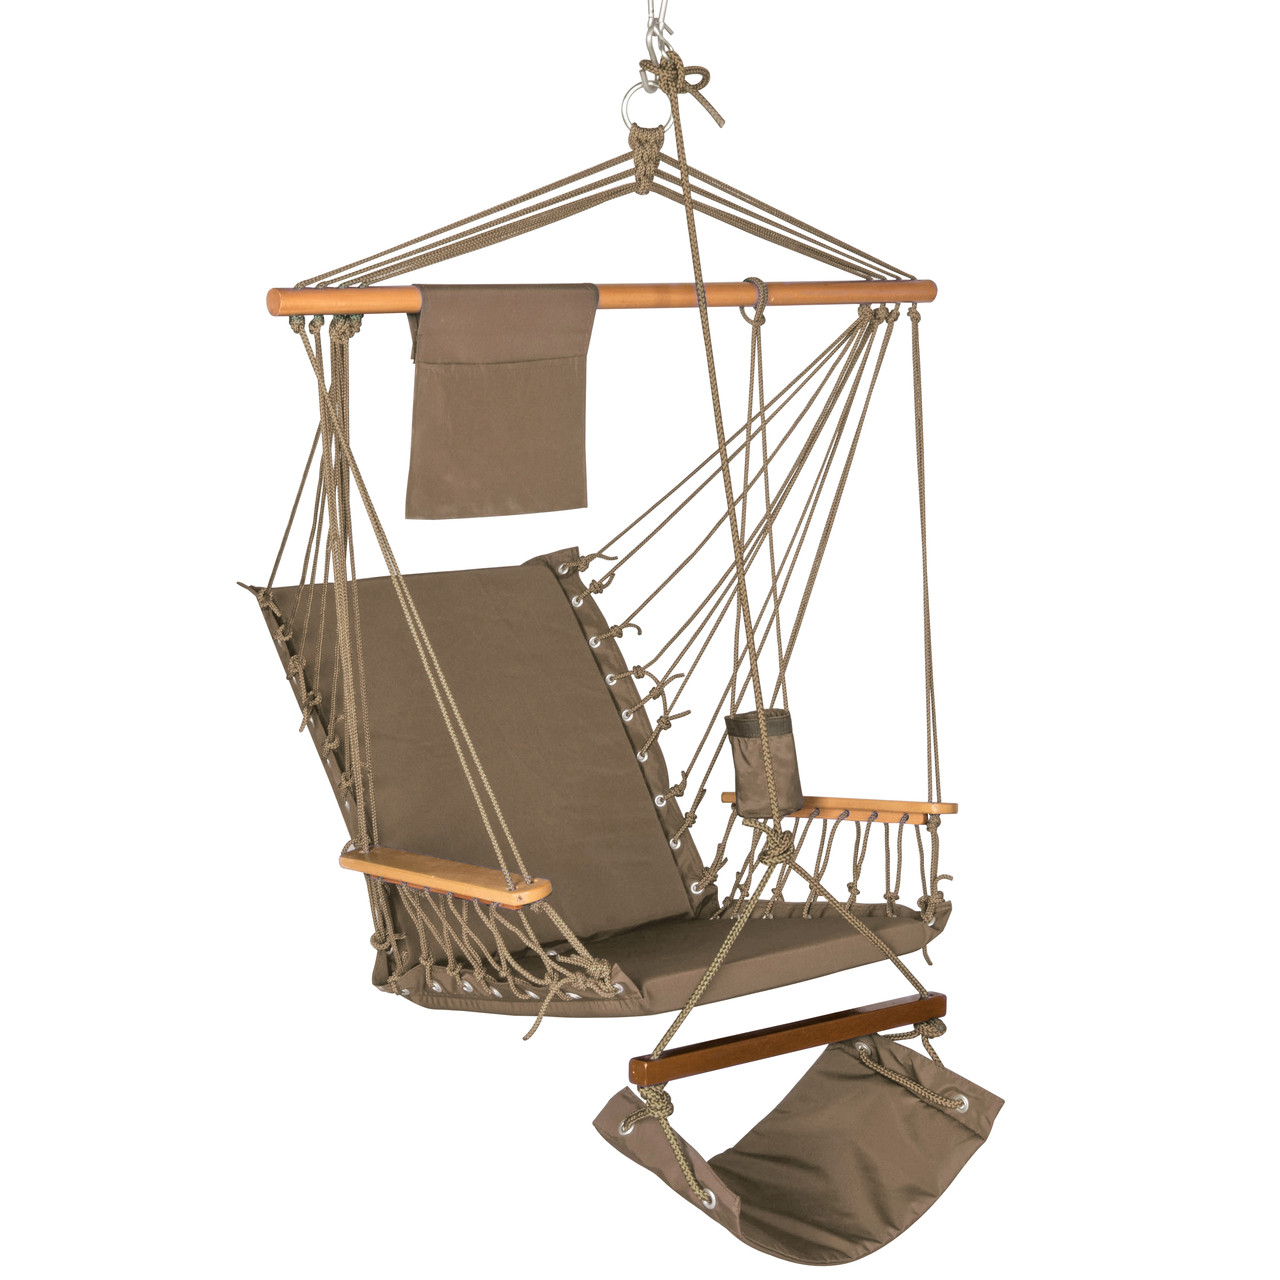 Charming Lazy Daze Hammocks Hanging Rope Chair Cotton Padded Swing Chair Hammock Seat  With Cup Holder,Footrestu0026Hardware ...